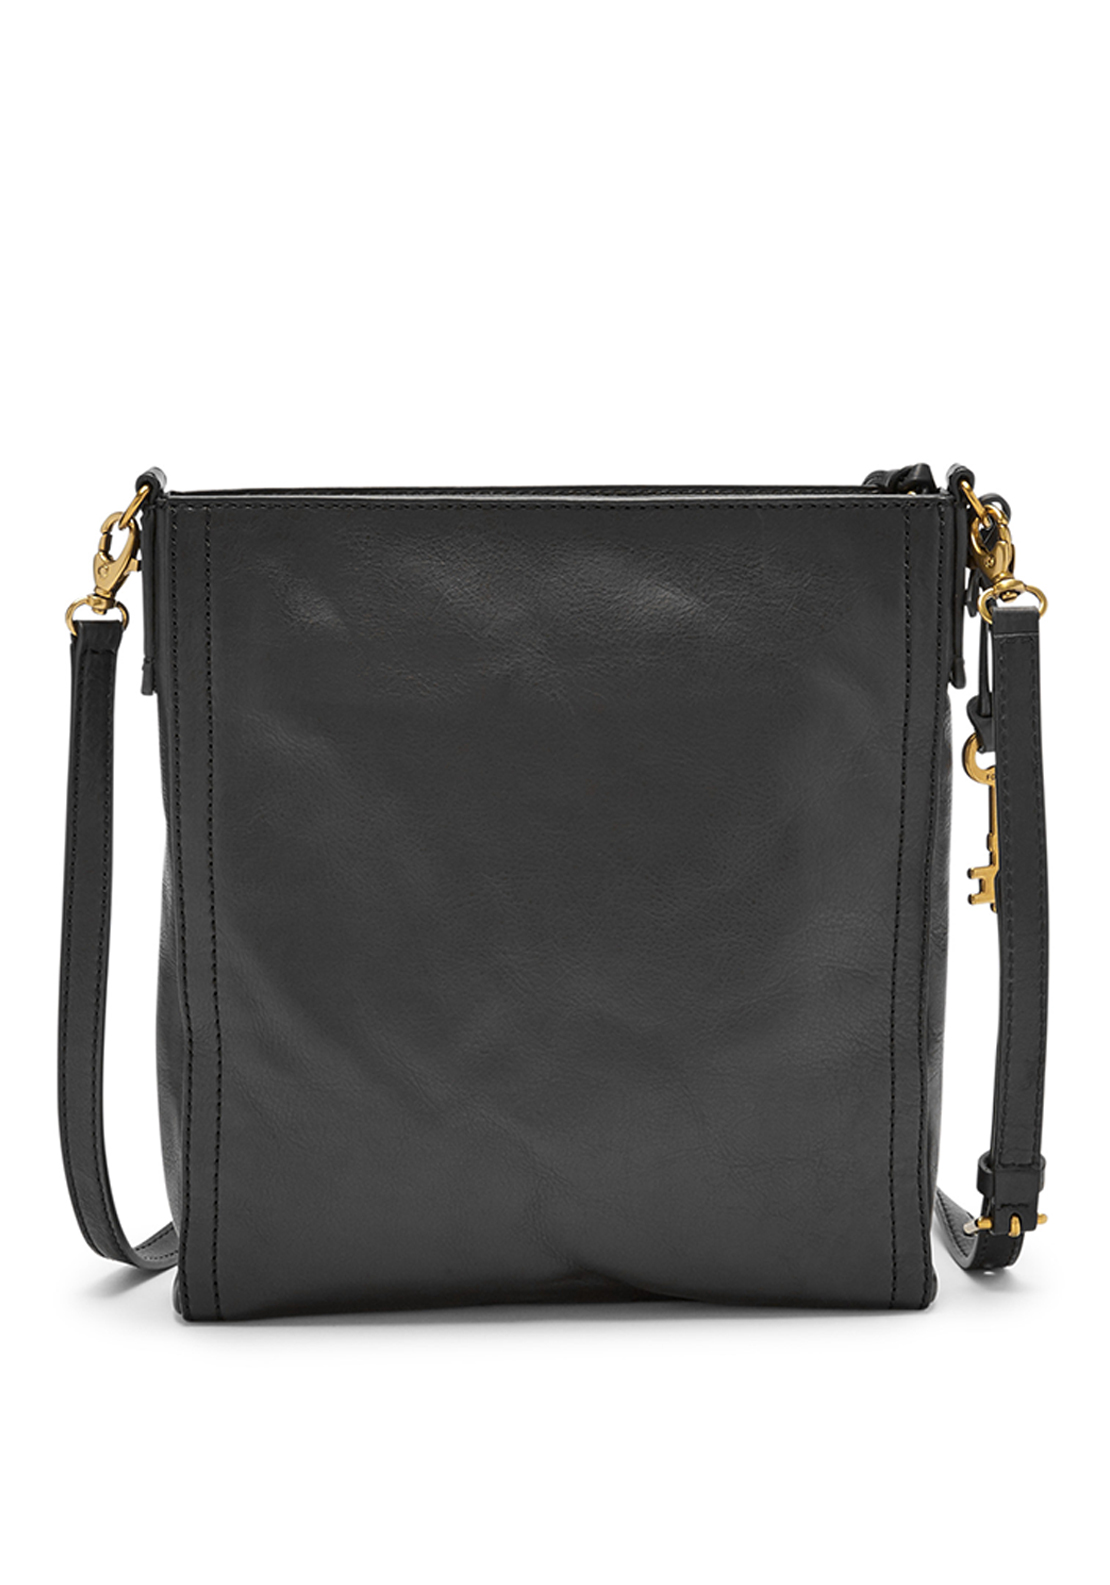 Fossil Emma Leather Crossbody Bag, Black